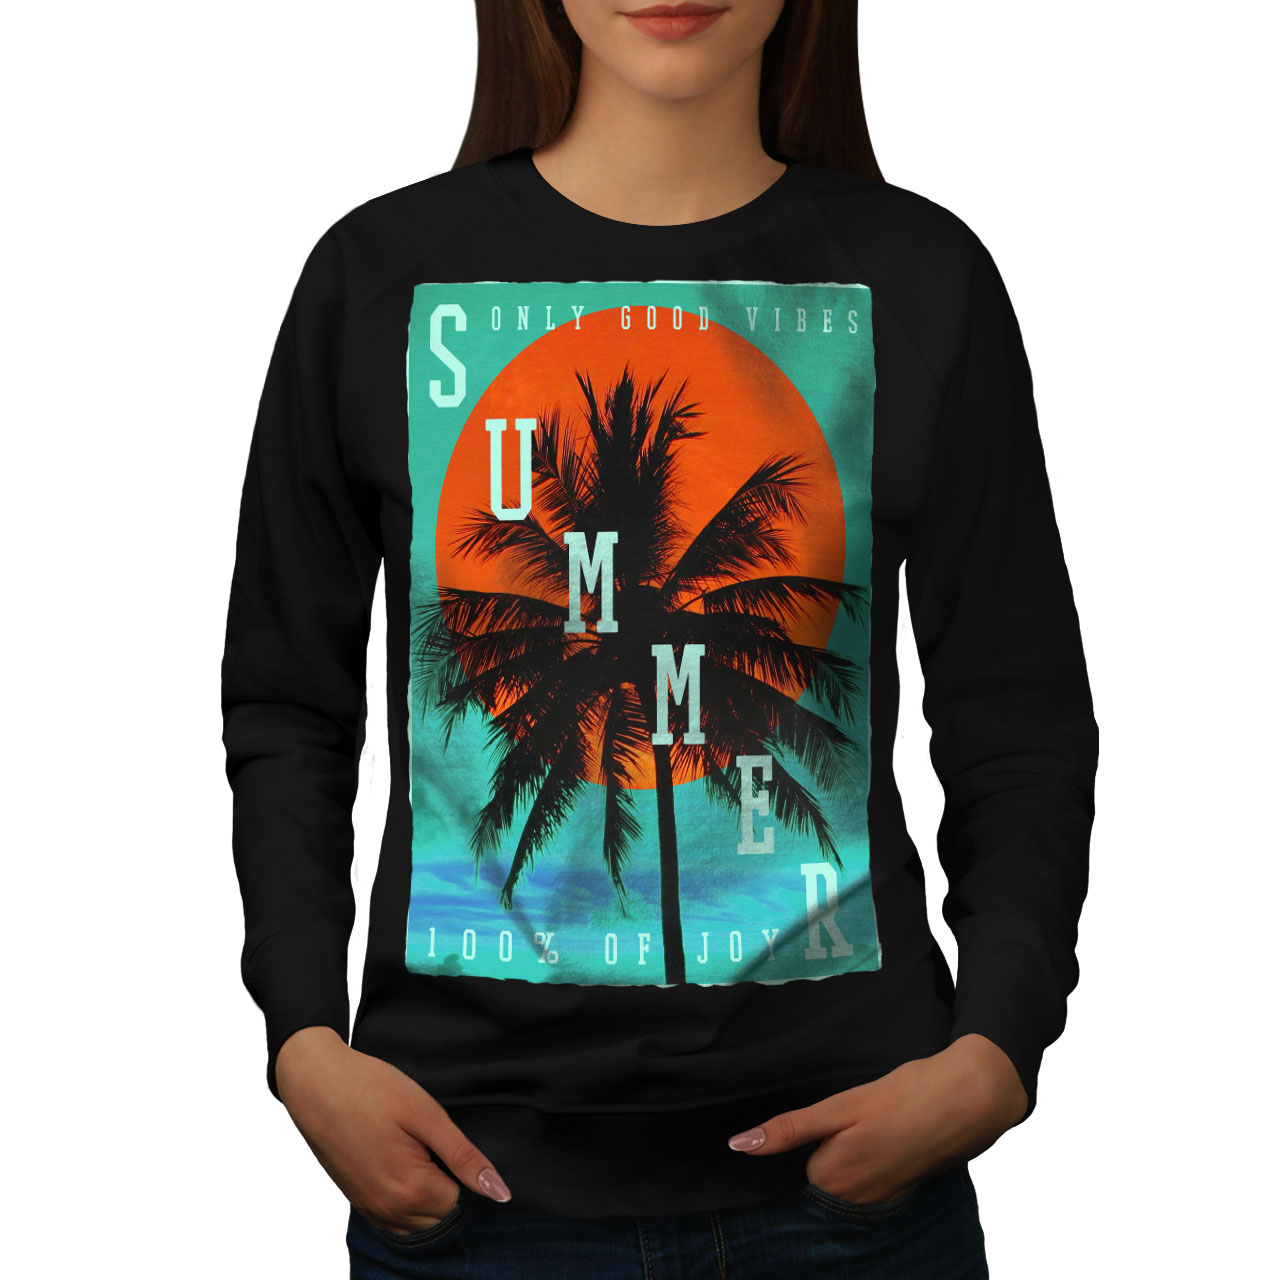 Begeistert Wellcoda Summer Good Vibes Womens Sweatshirt, Good Casual Pullover Jumper